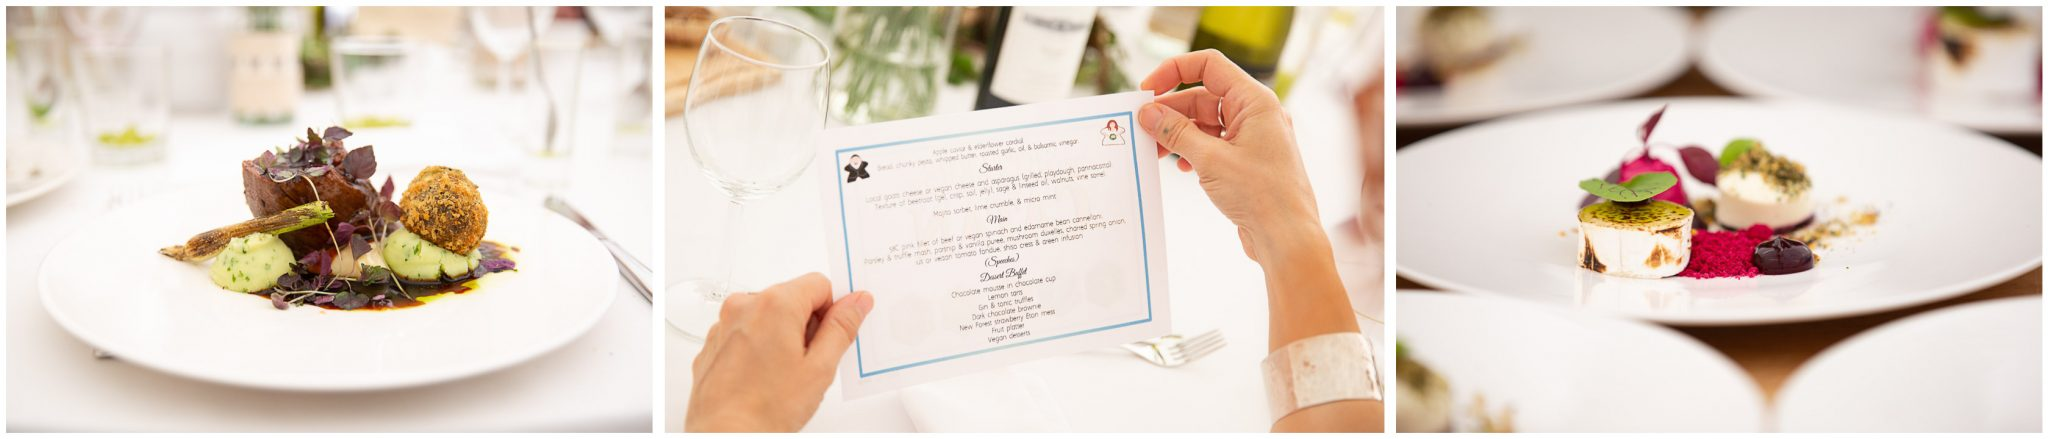 Stunningly presented courses in the wedding breakfast